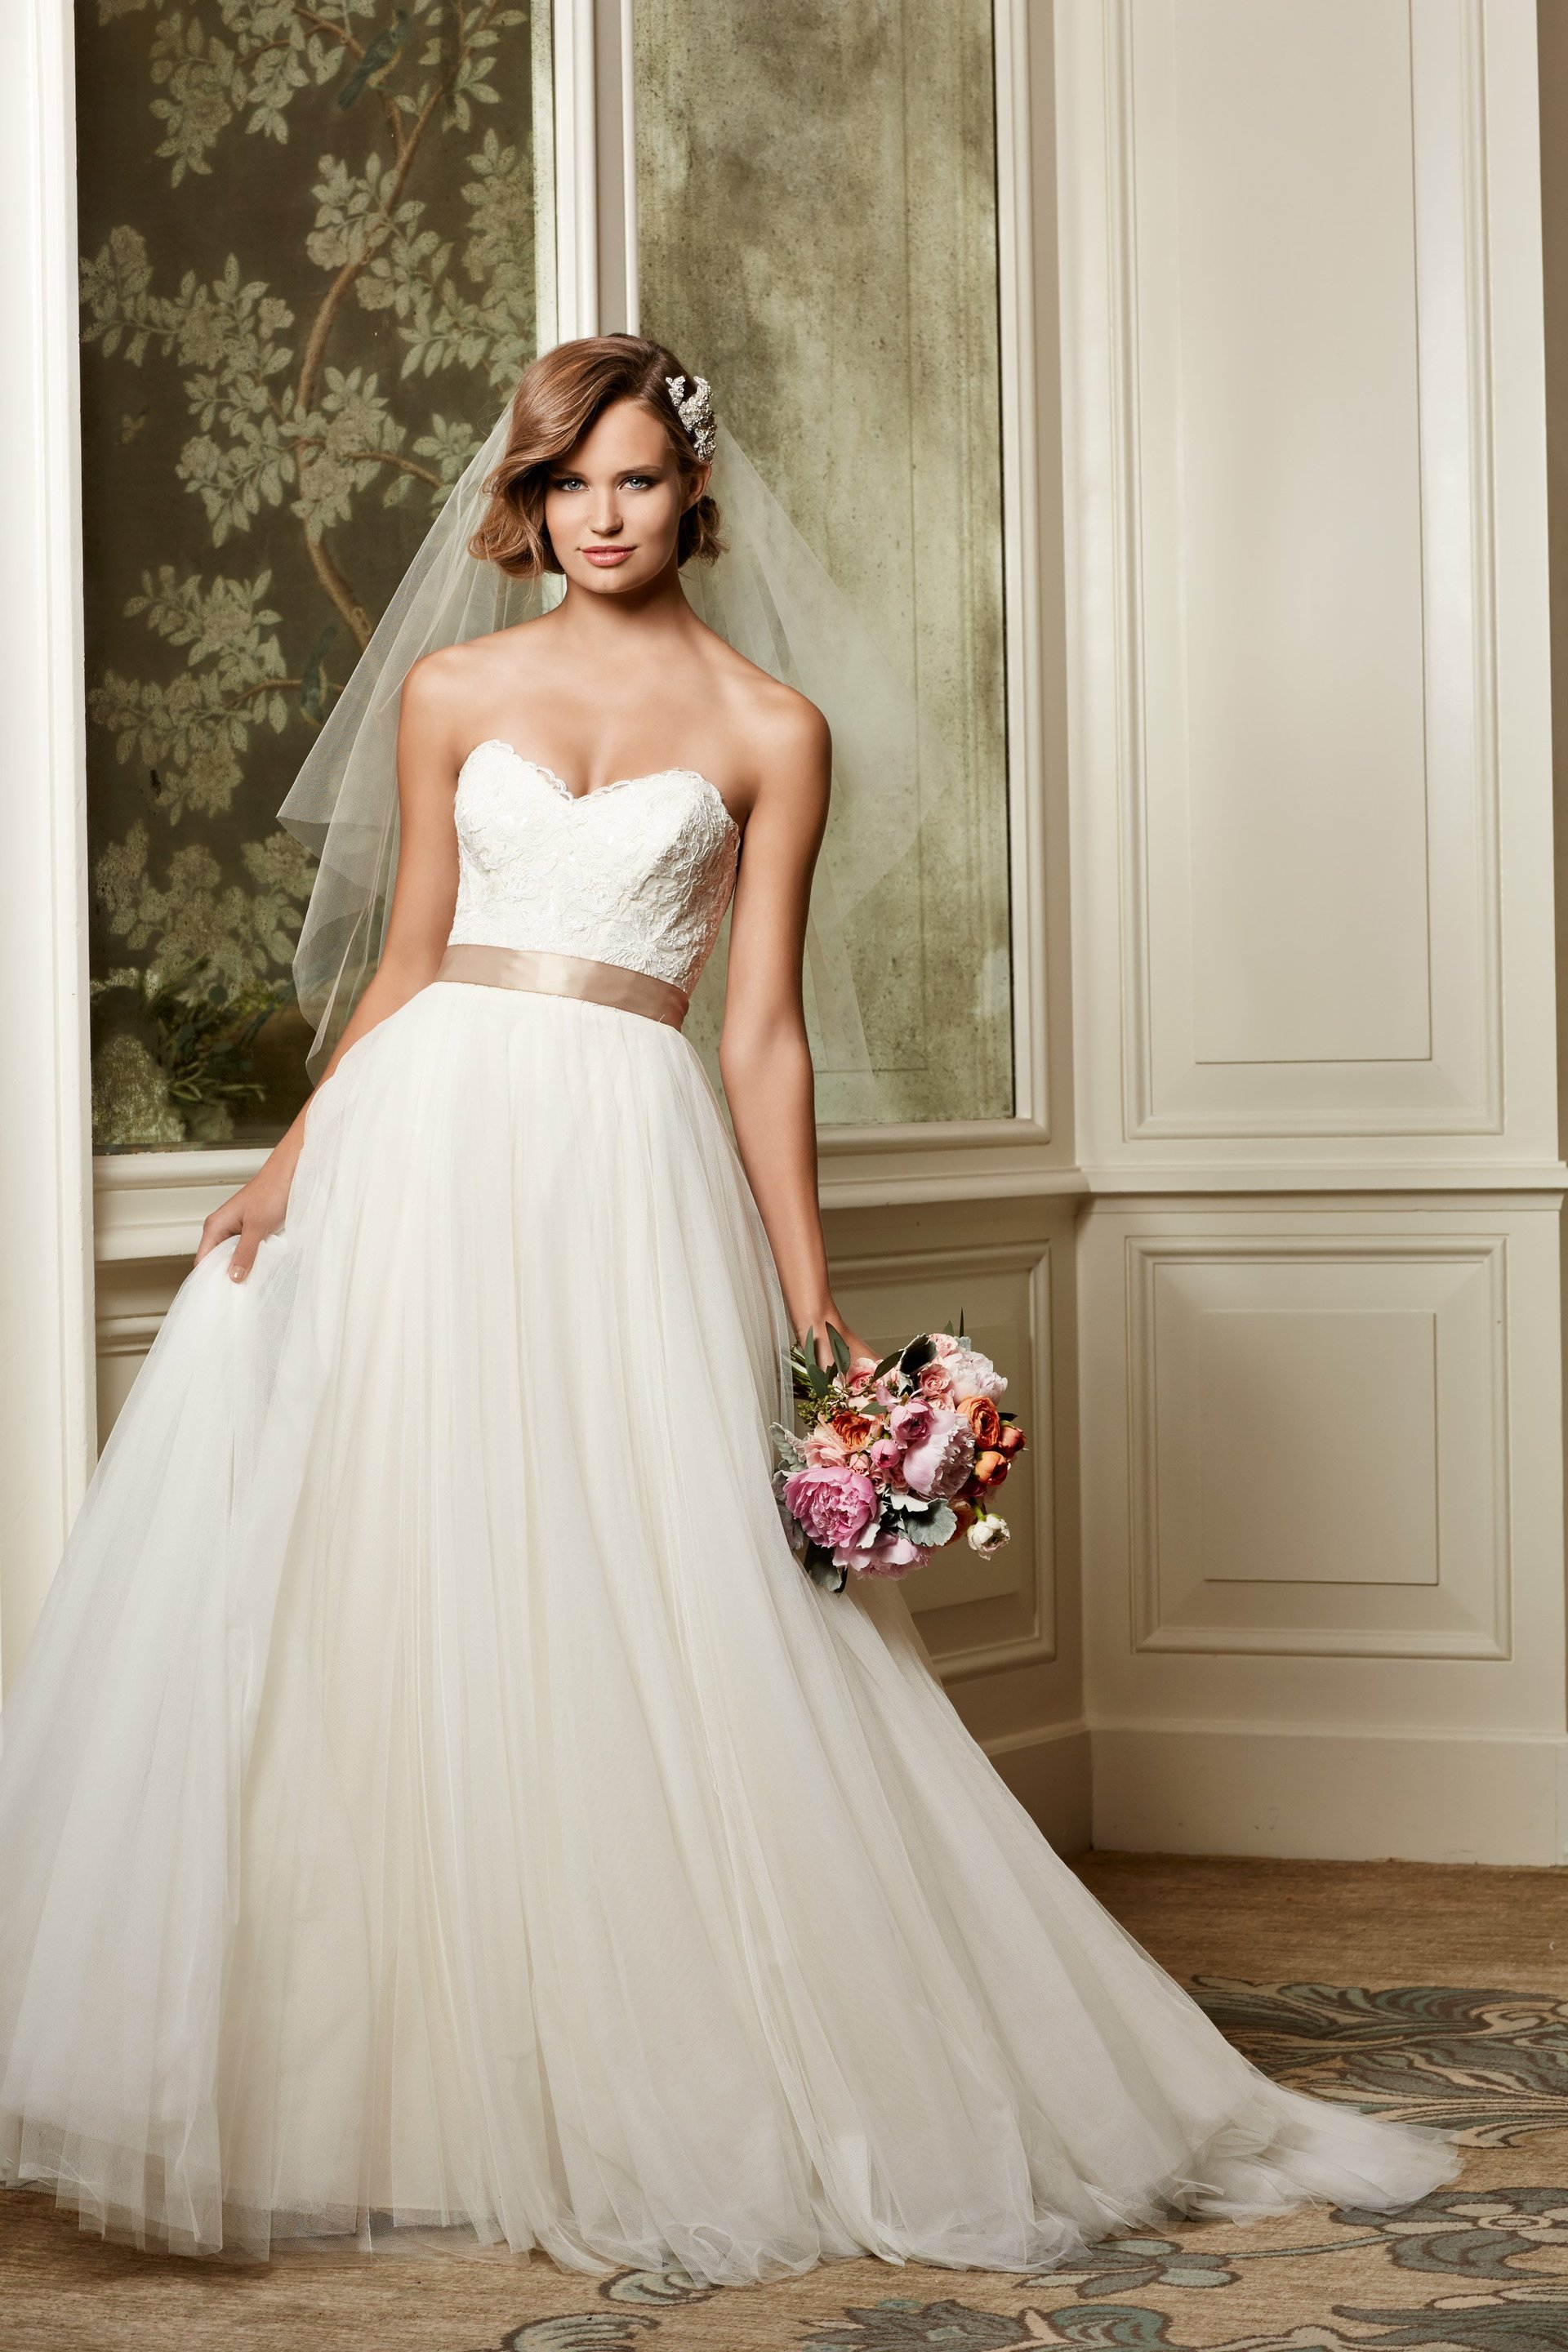 Bridal Shop in Bournemouth, Dorset -Wedding dresses, Bridesmaid ...